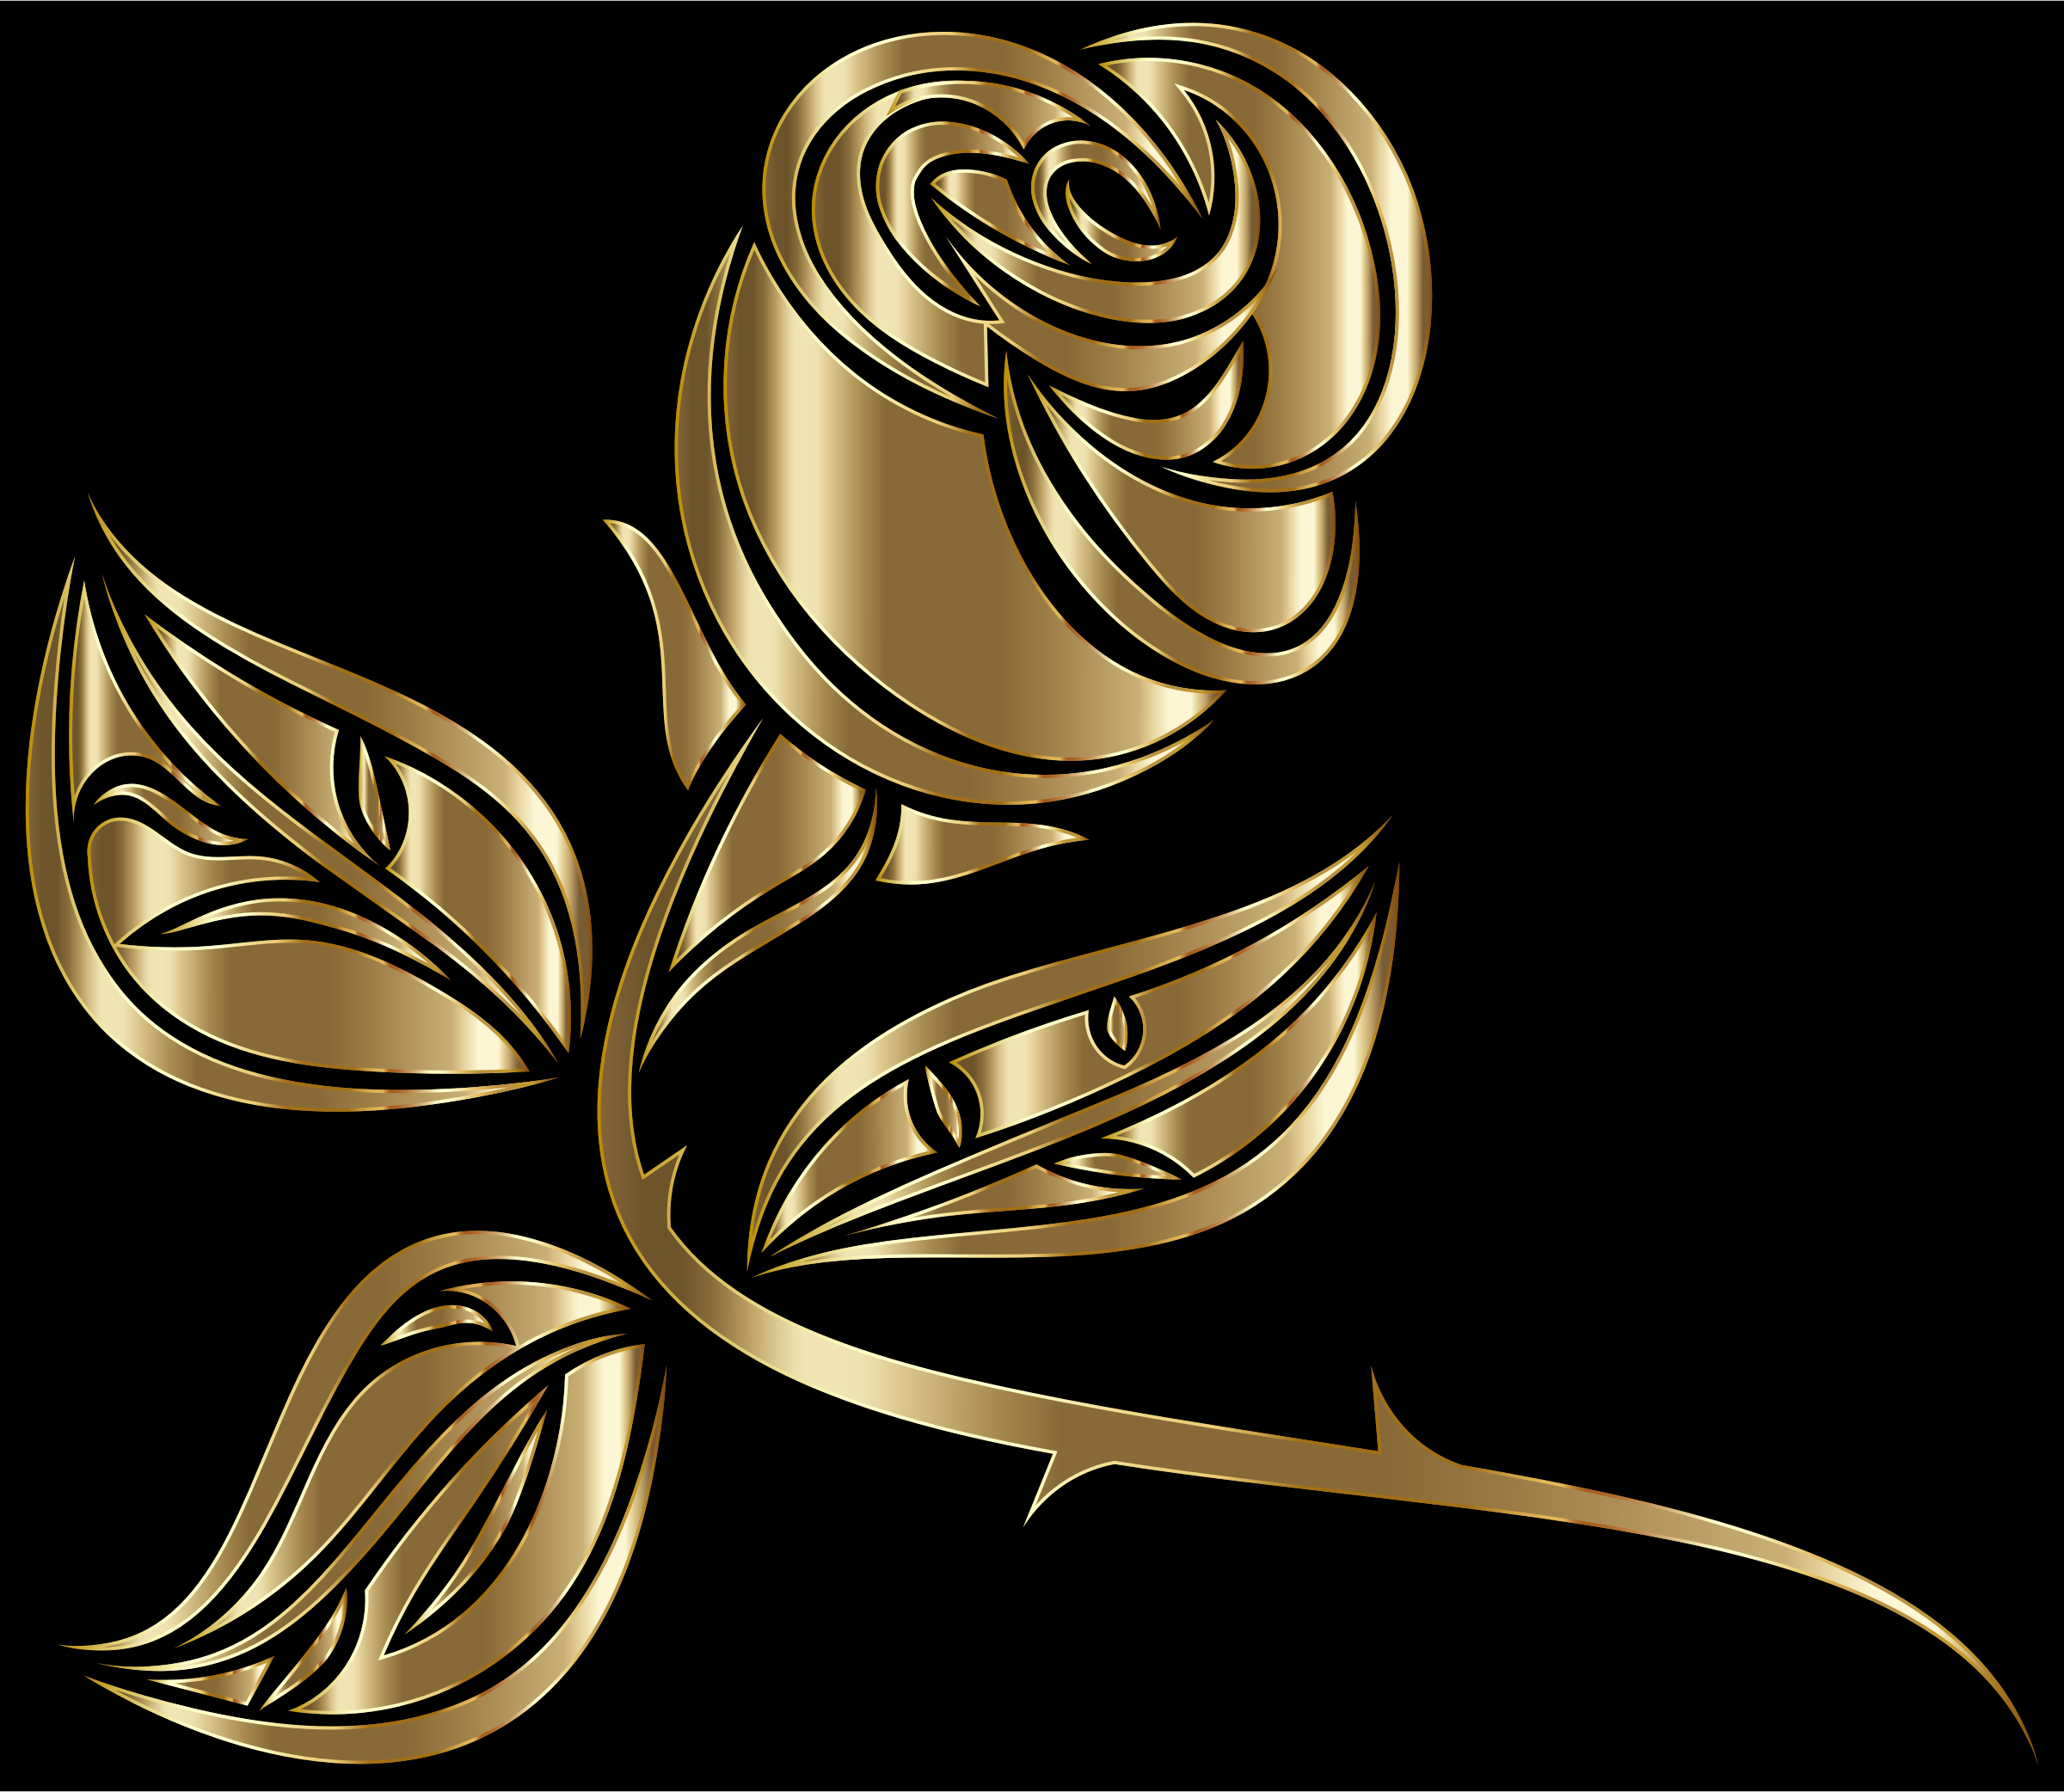 Stylized Rose Extended 9 by GDJ